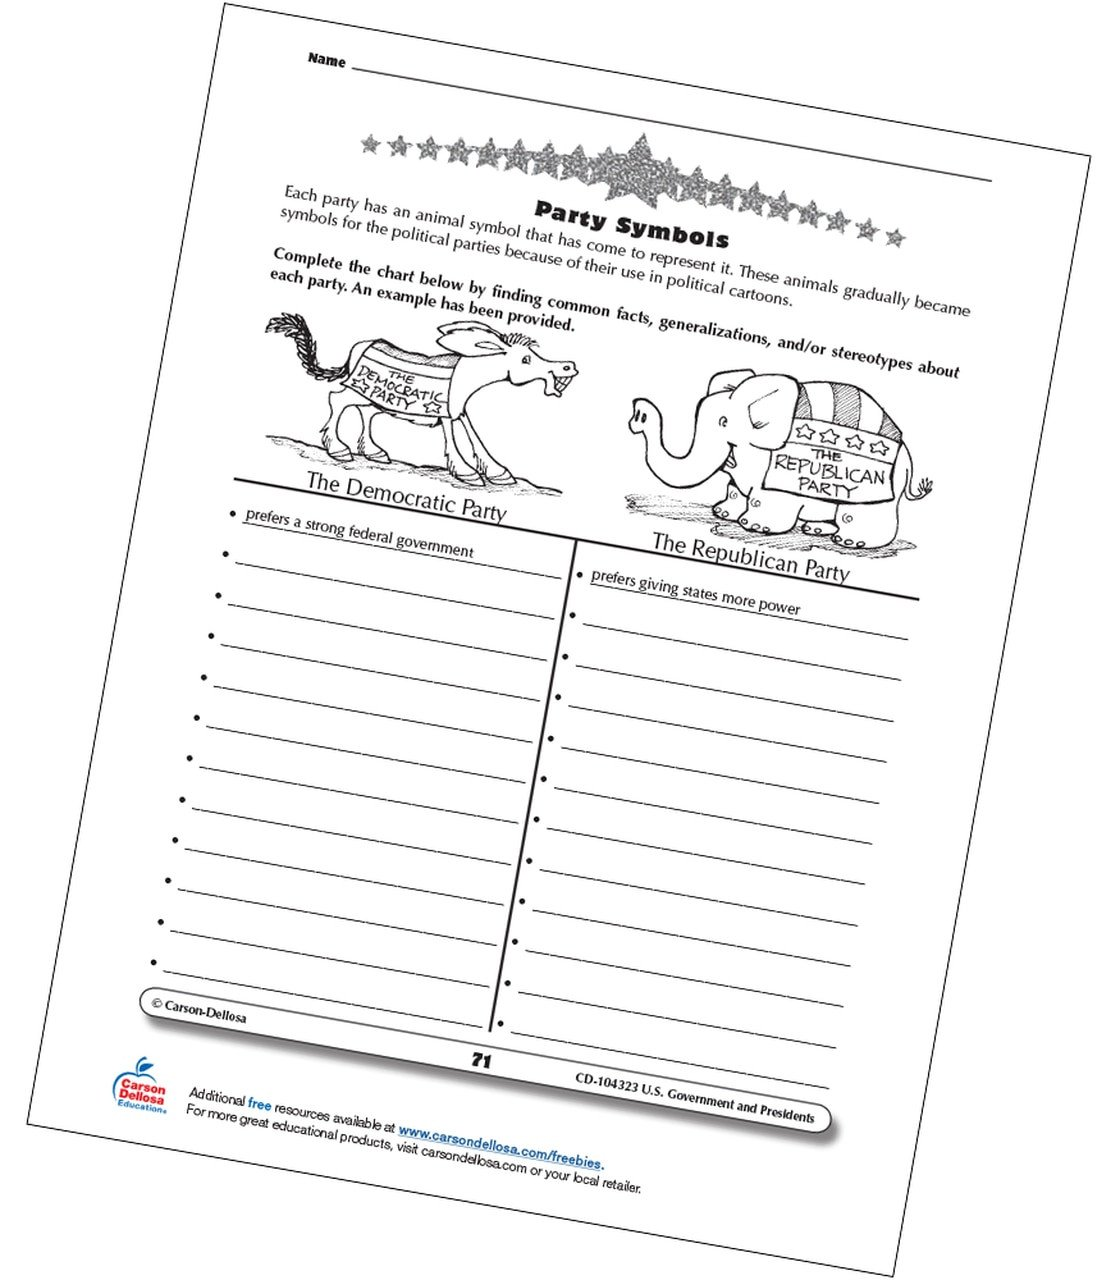 Election Worksheets for Elementary Students U S Political Party Symbols Grades 3 5 Free Printable